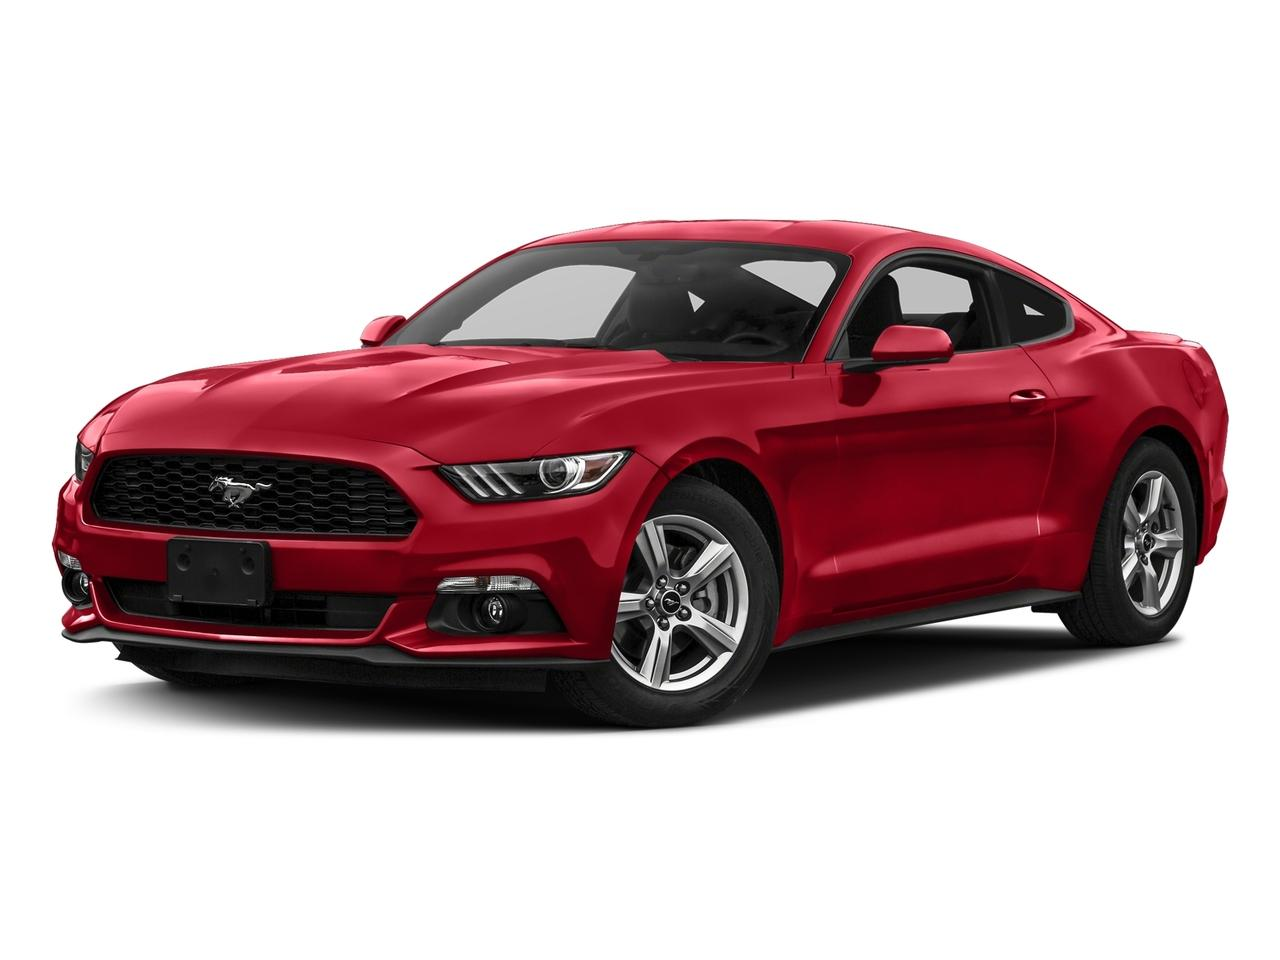 2017 Ford Mustang Vehicle Photo in Peoria, IL 61615